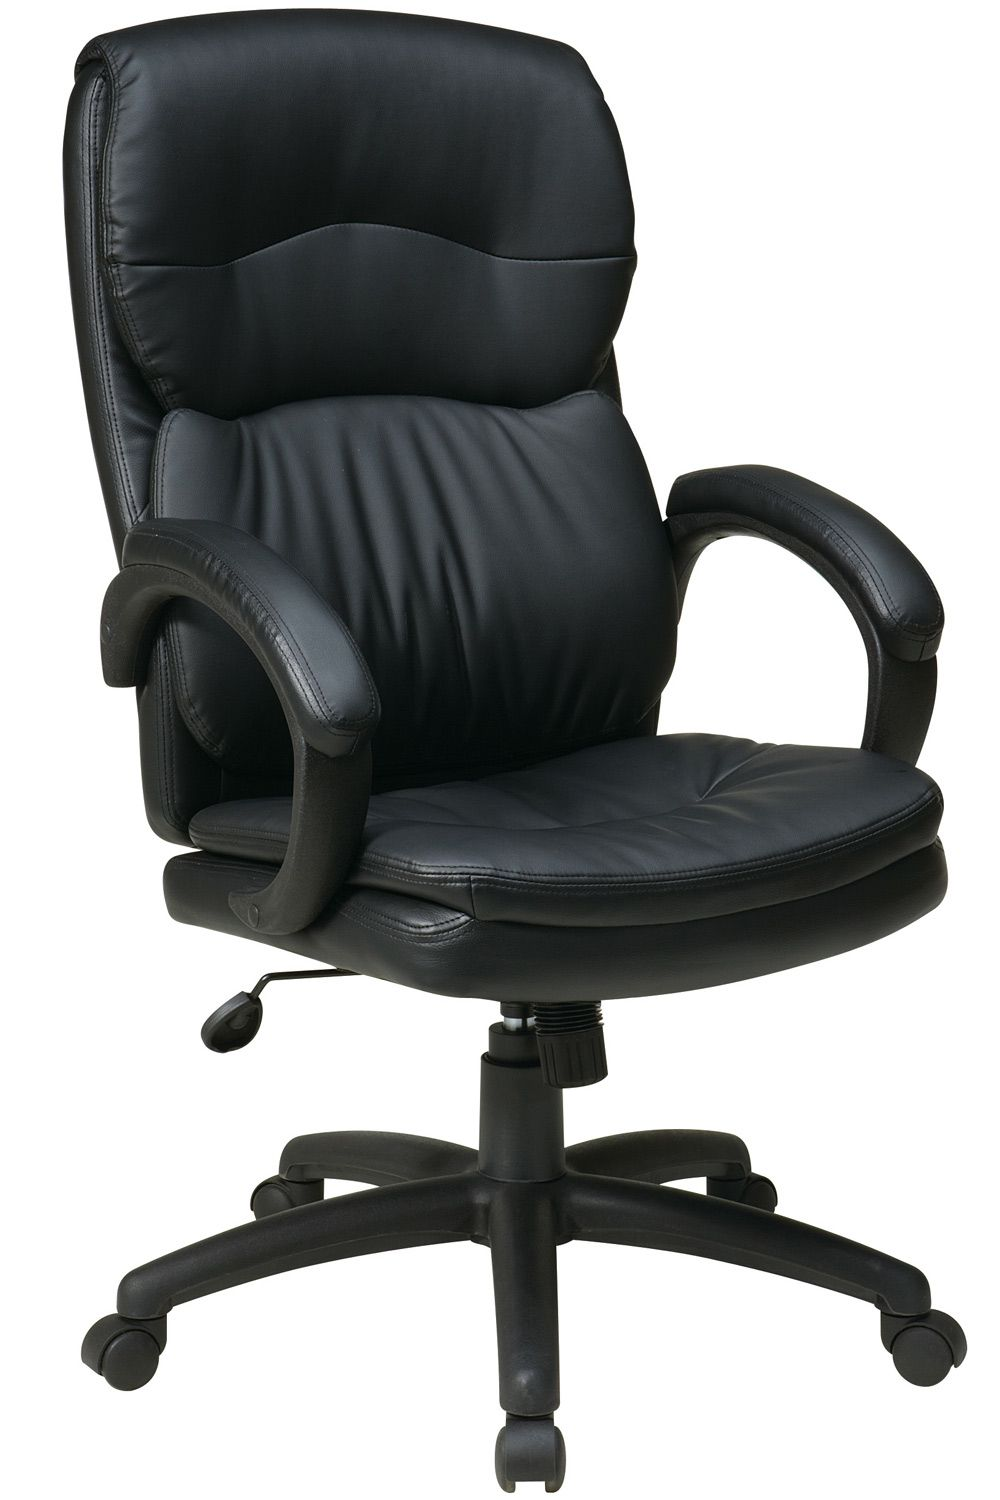 EC9230 Management Chair http://vaughanofficefurniture.com Call us for great deals!📞 905-669-0112